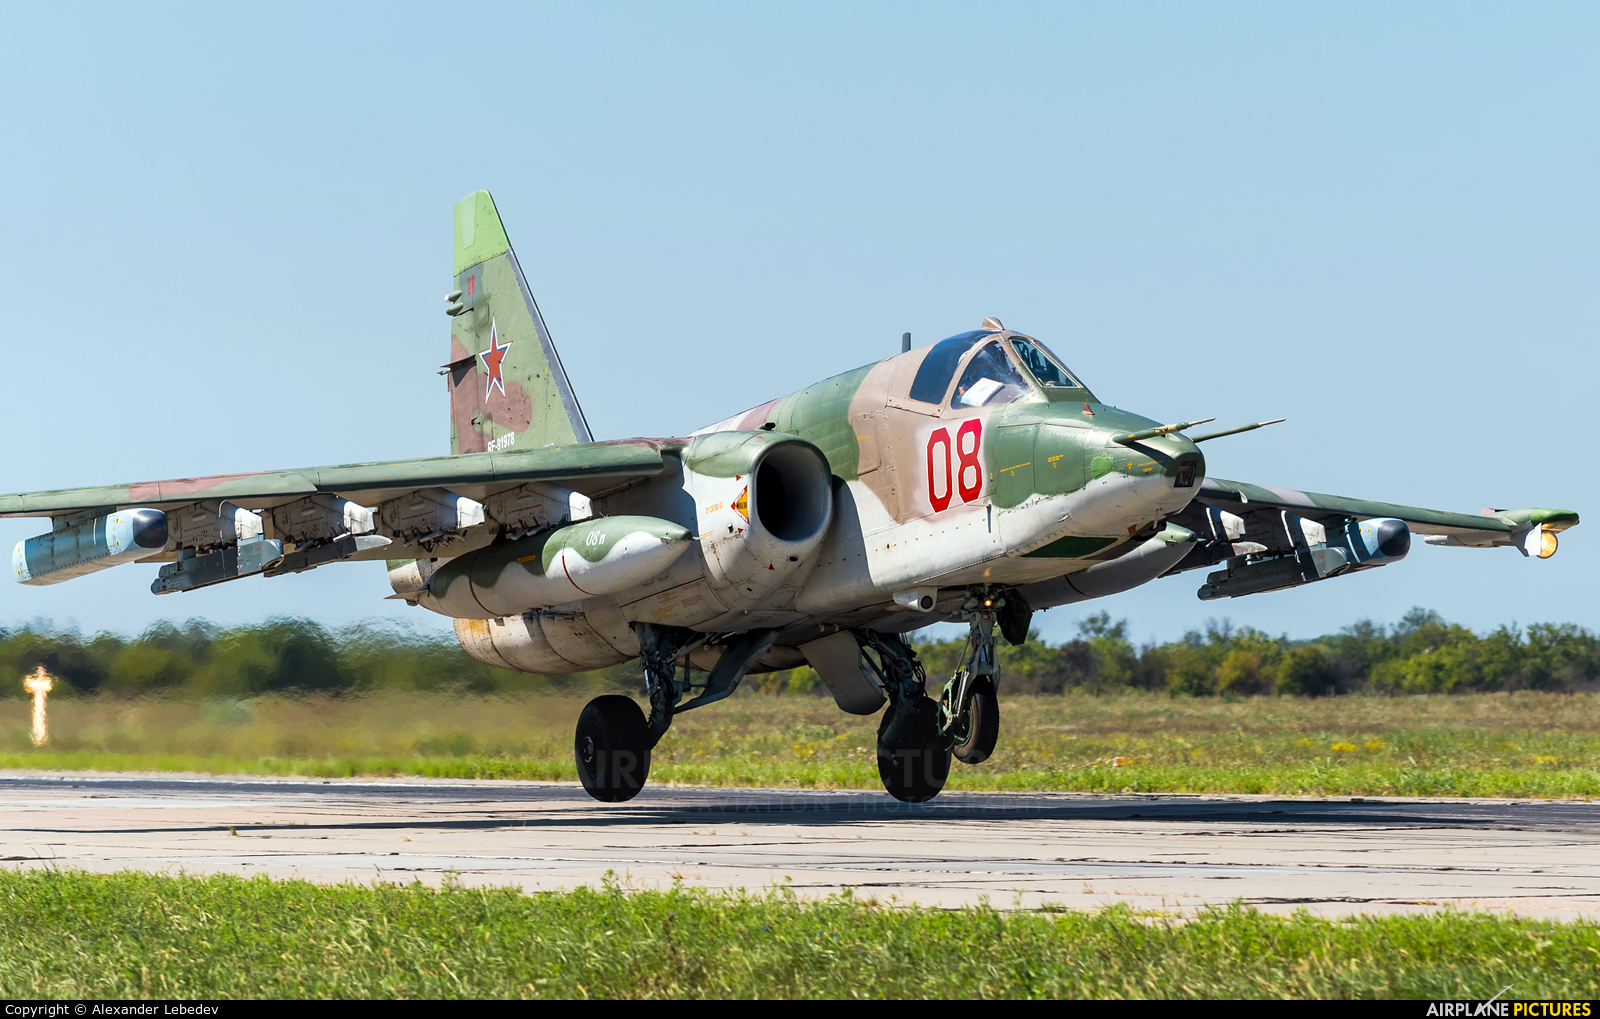 Russia - Air Force 08 aircraft at Undisclosed Location